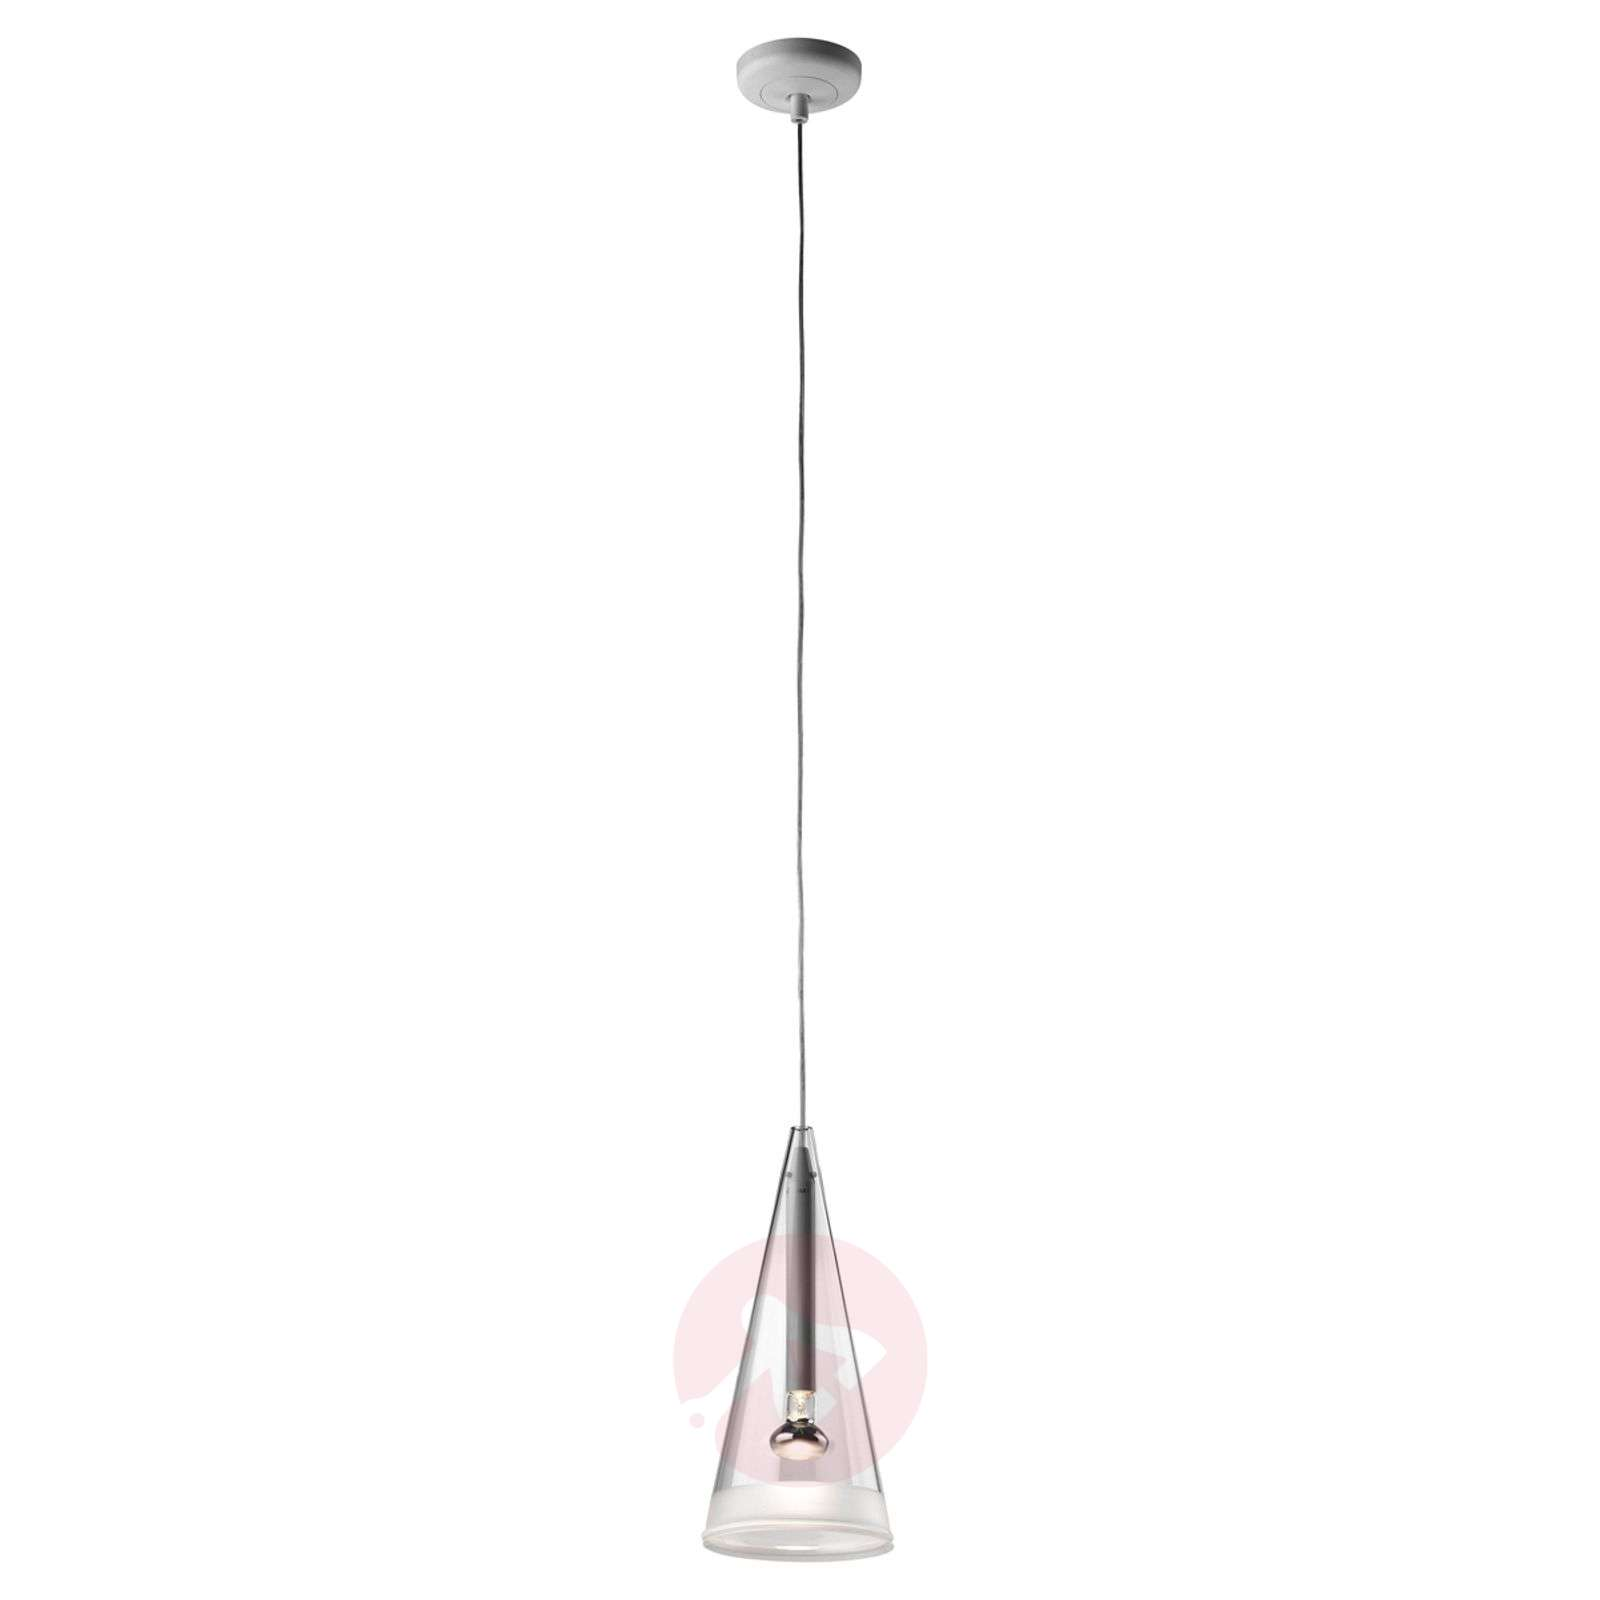 Suspension de verre à 1 lampe Fucsia-3510168-03